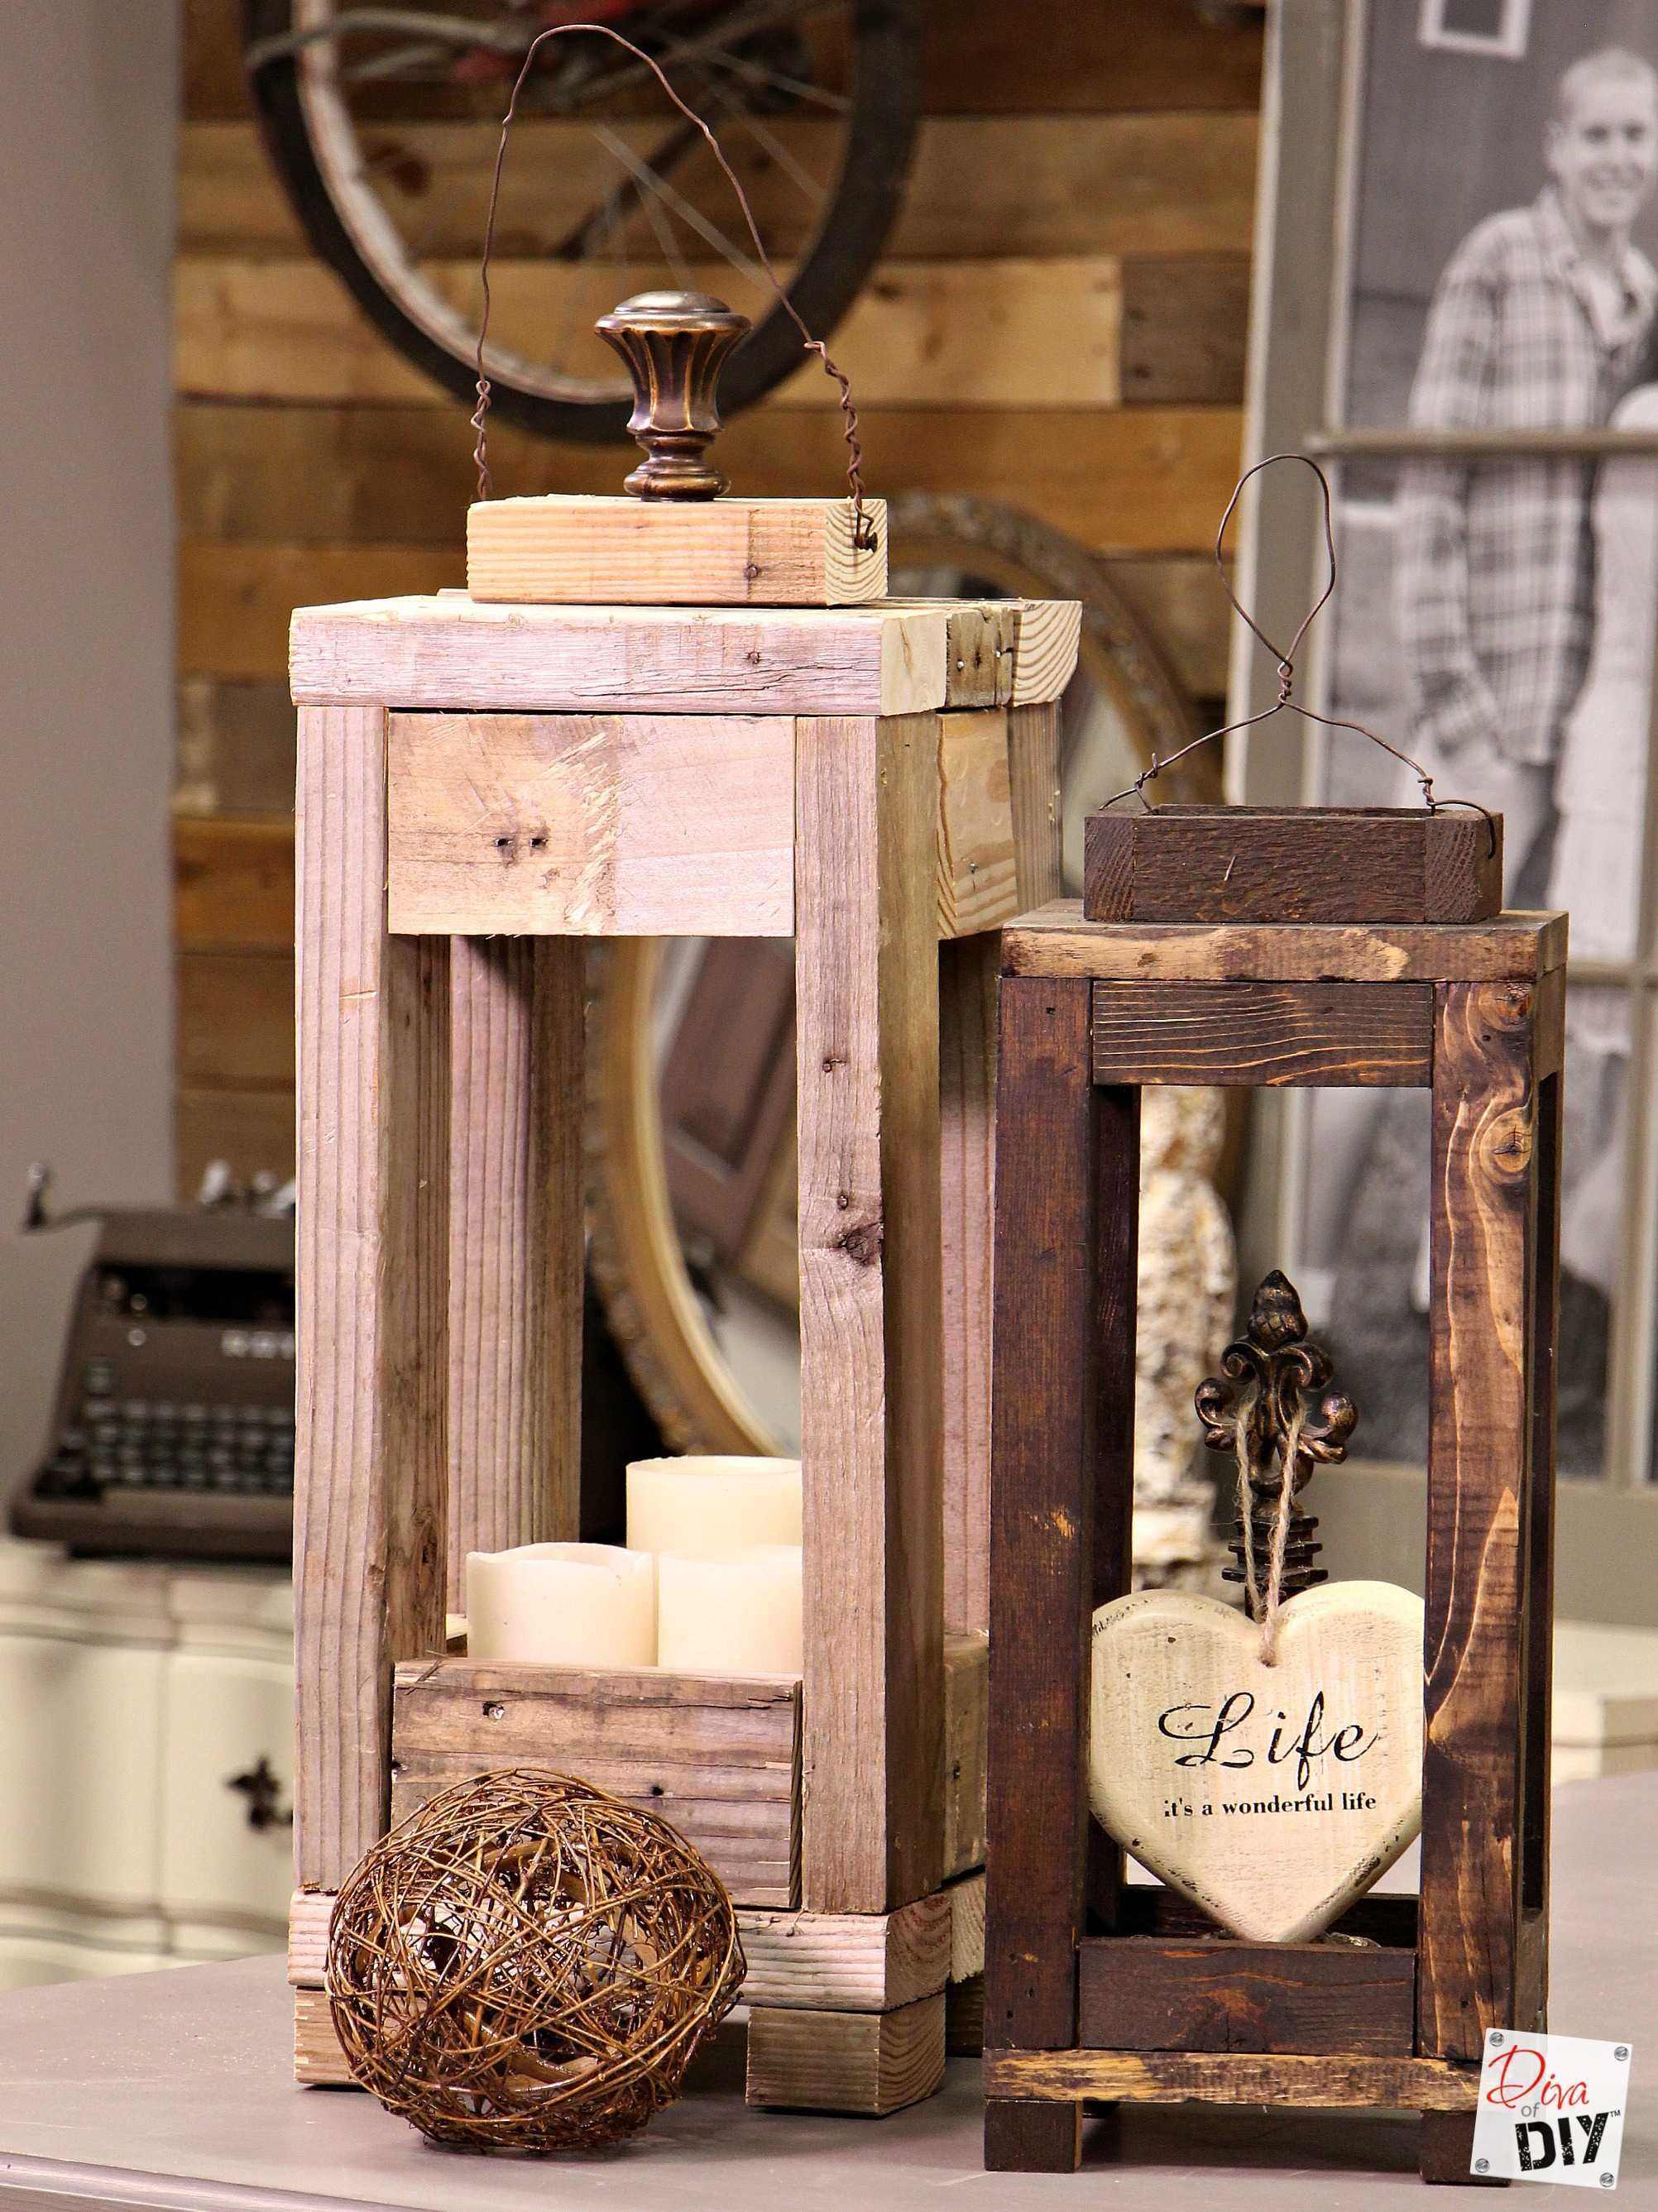 Easy Outdoor Decor How To Make Lanterns From Scrap Wood  # Muebles Faciles De Hacer En Madera